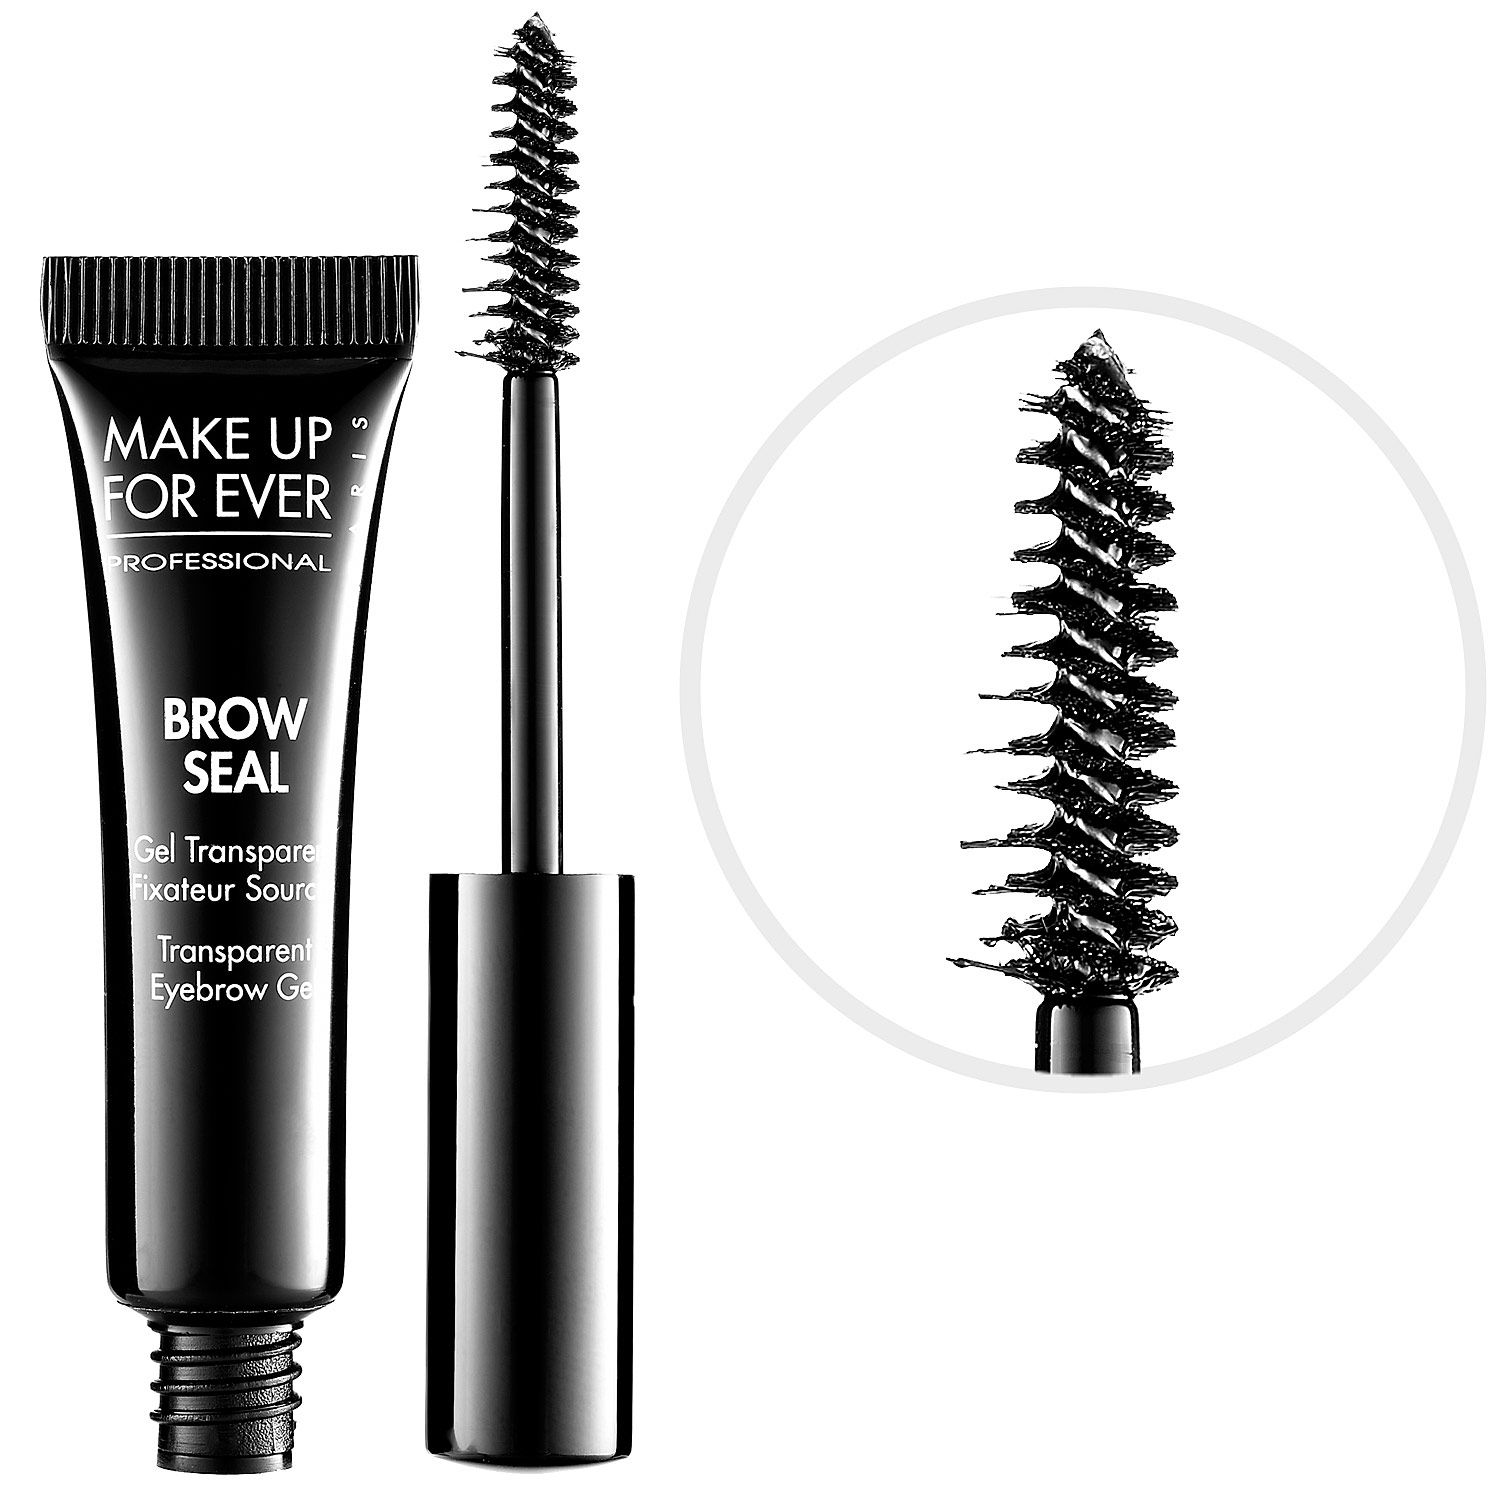 Mostloved brow products MAKE UP FOR EVER Brow Seal